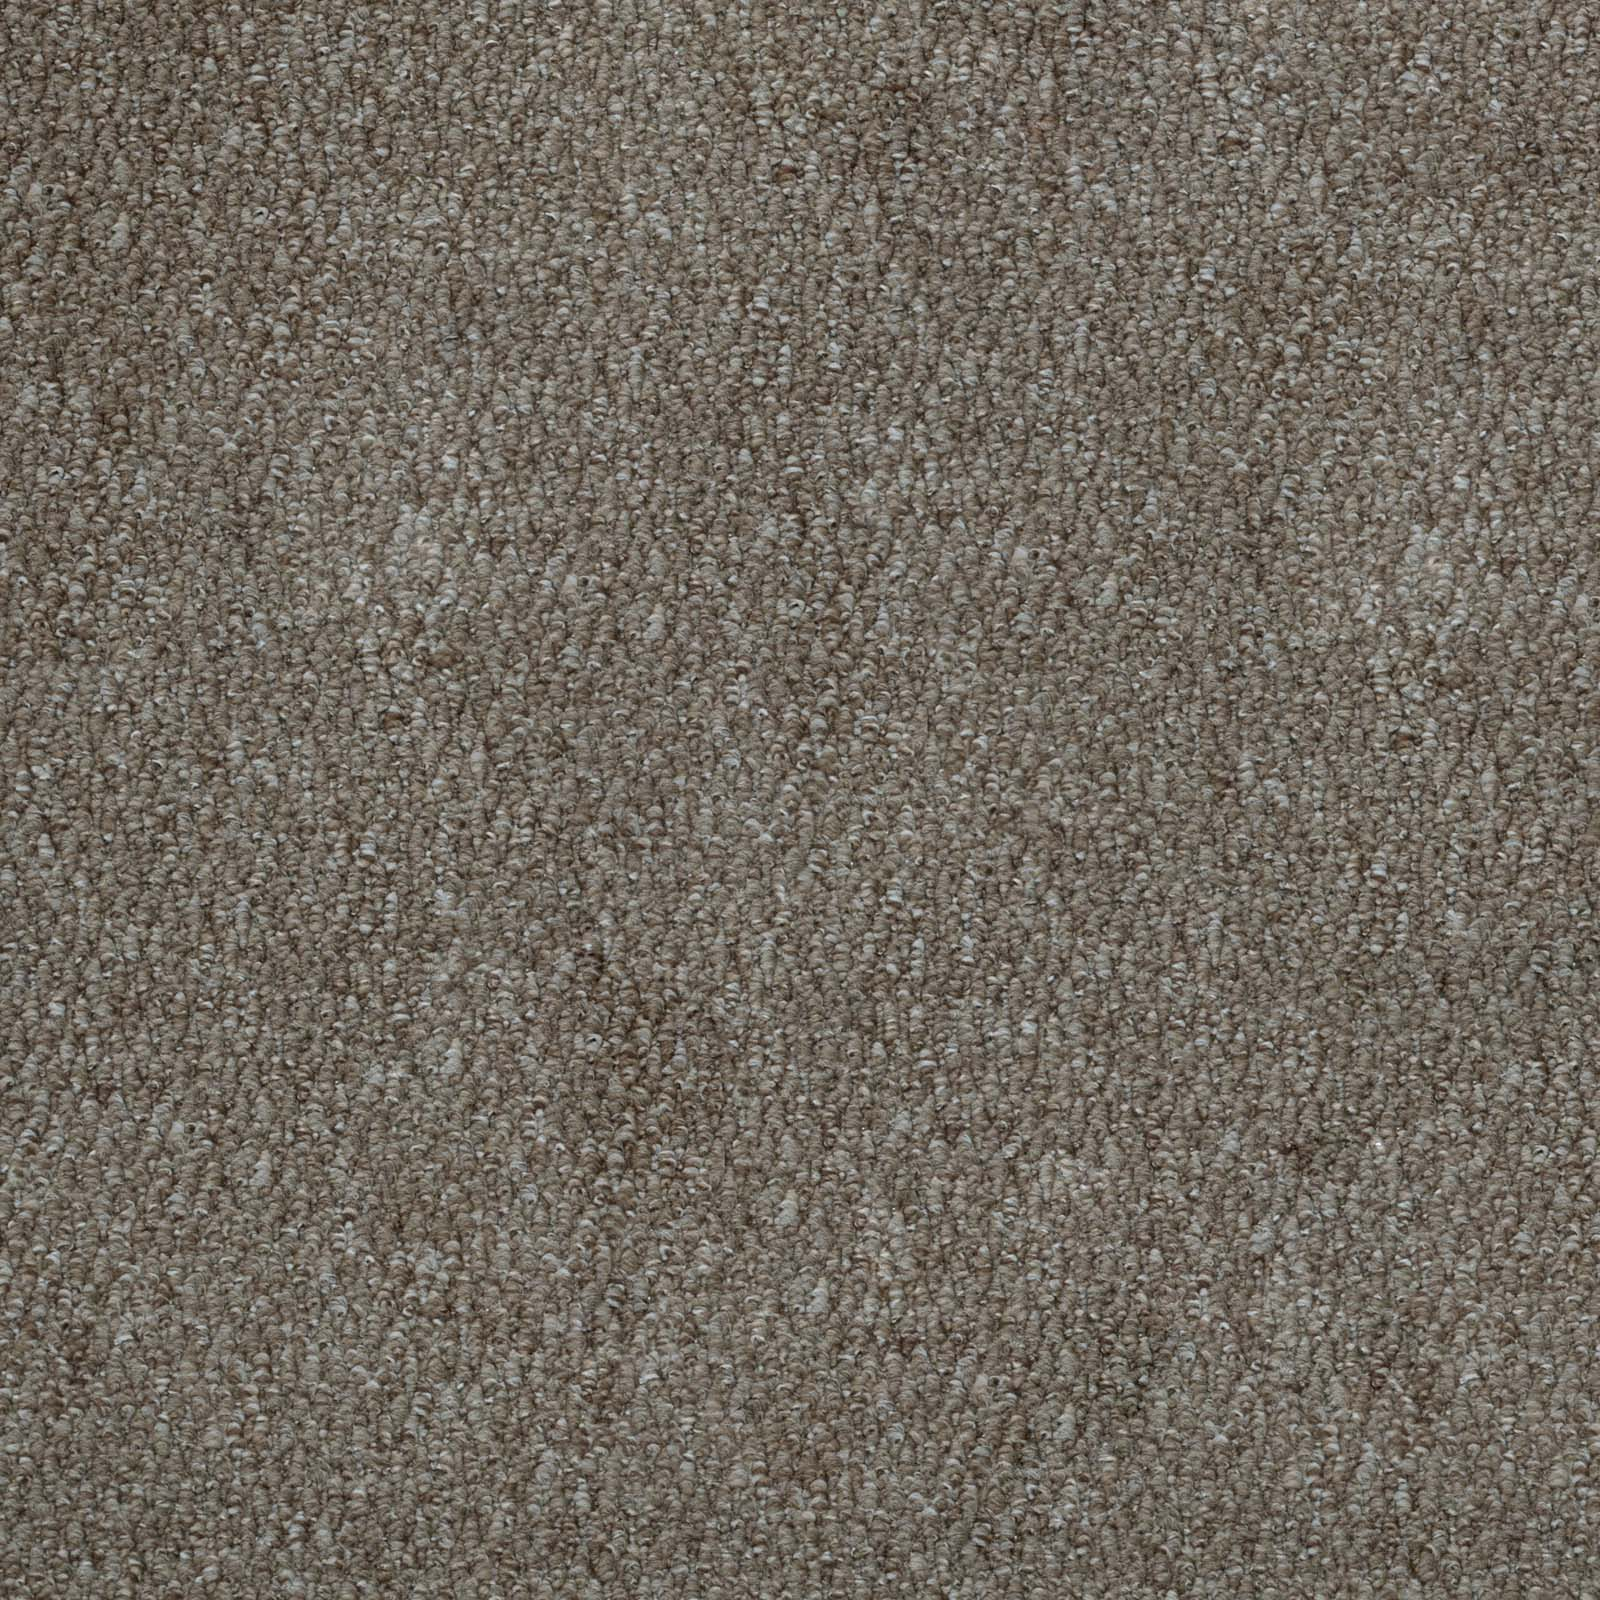 Light Brown Port Loop Carpet - Far